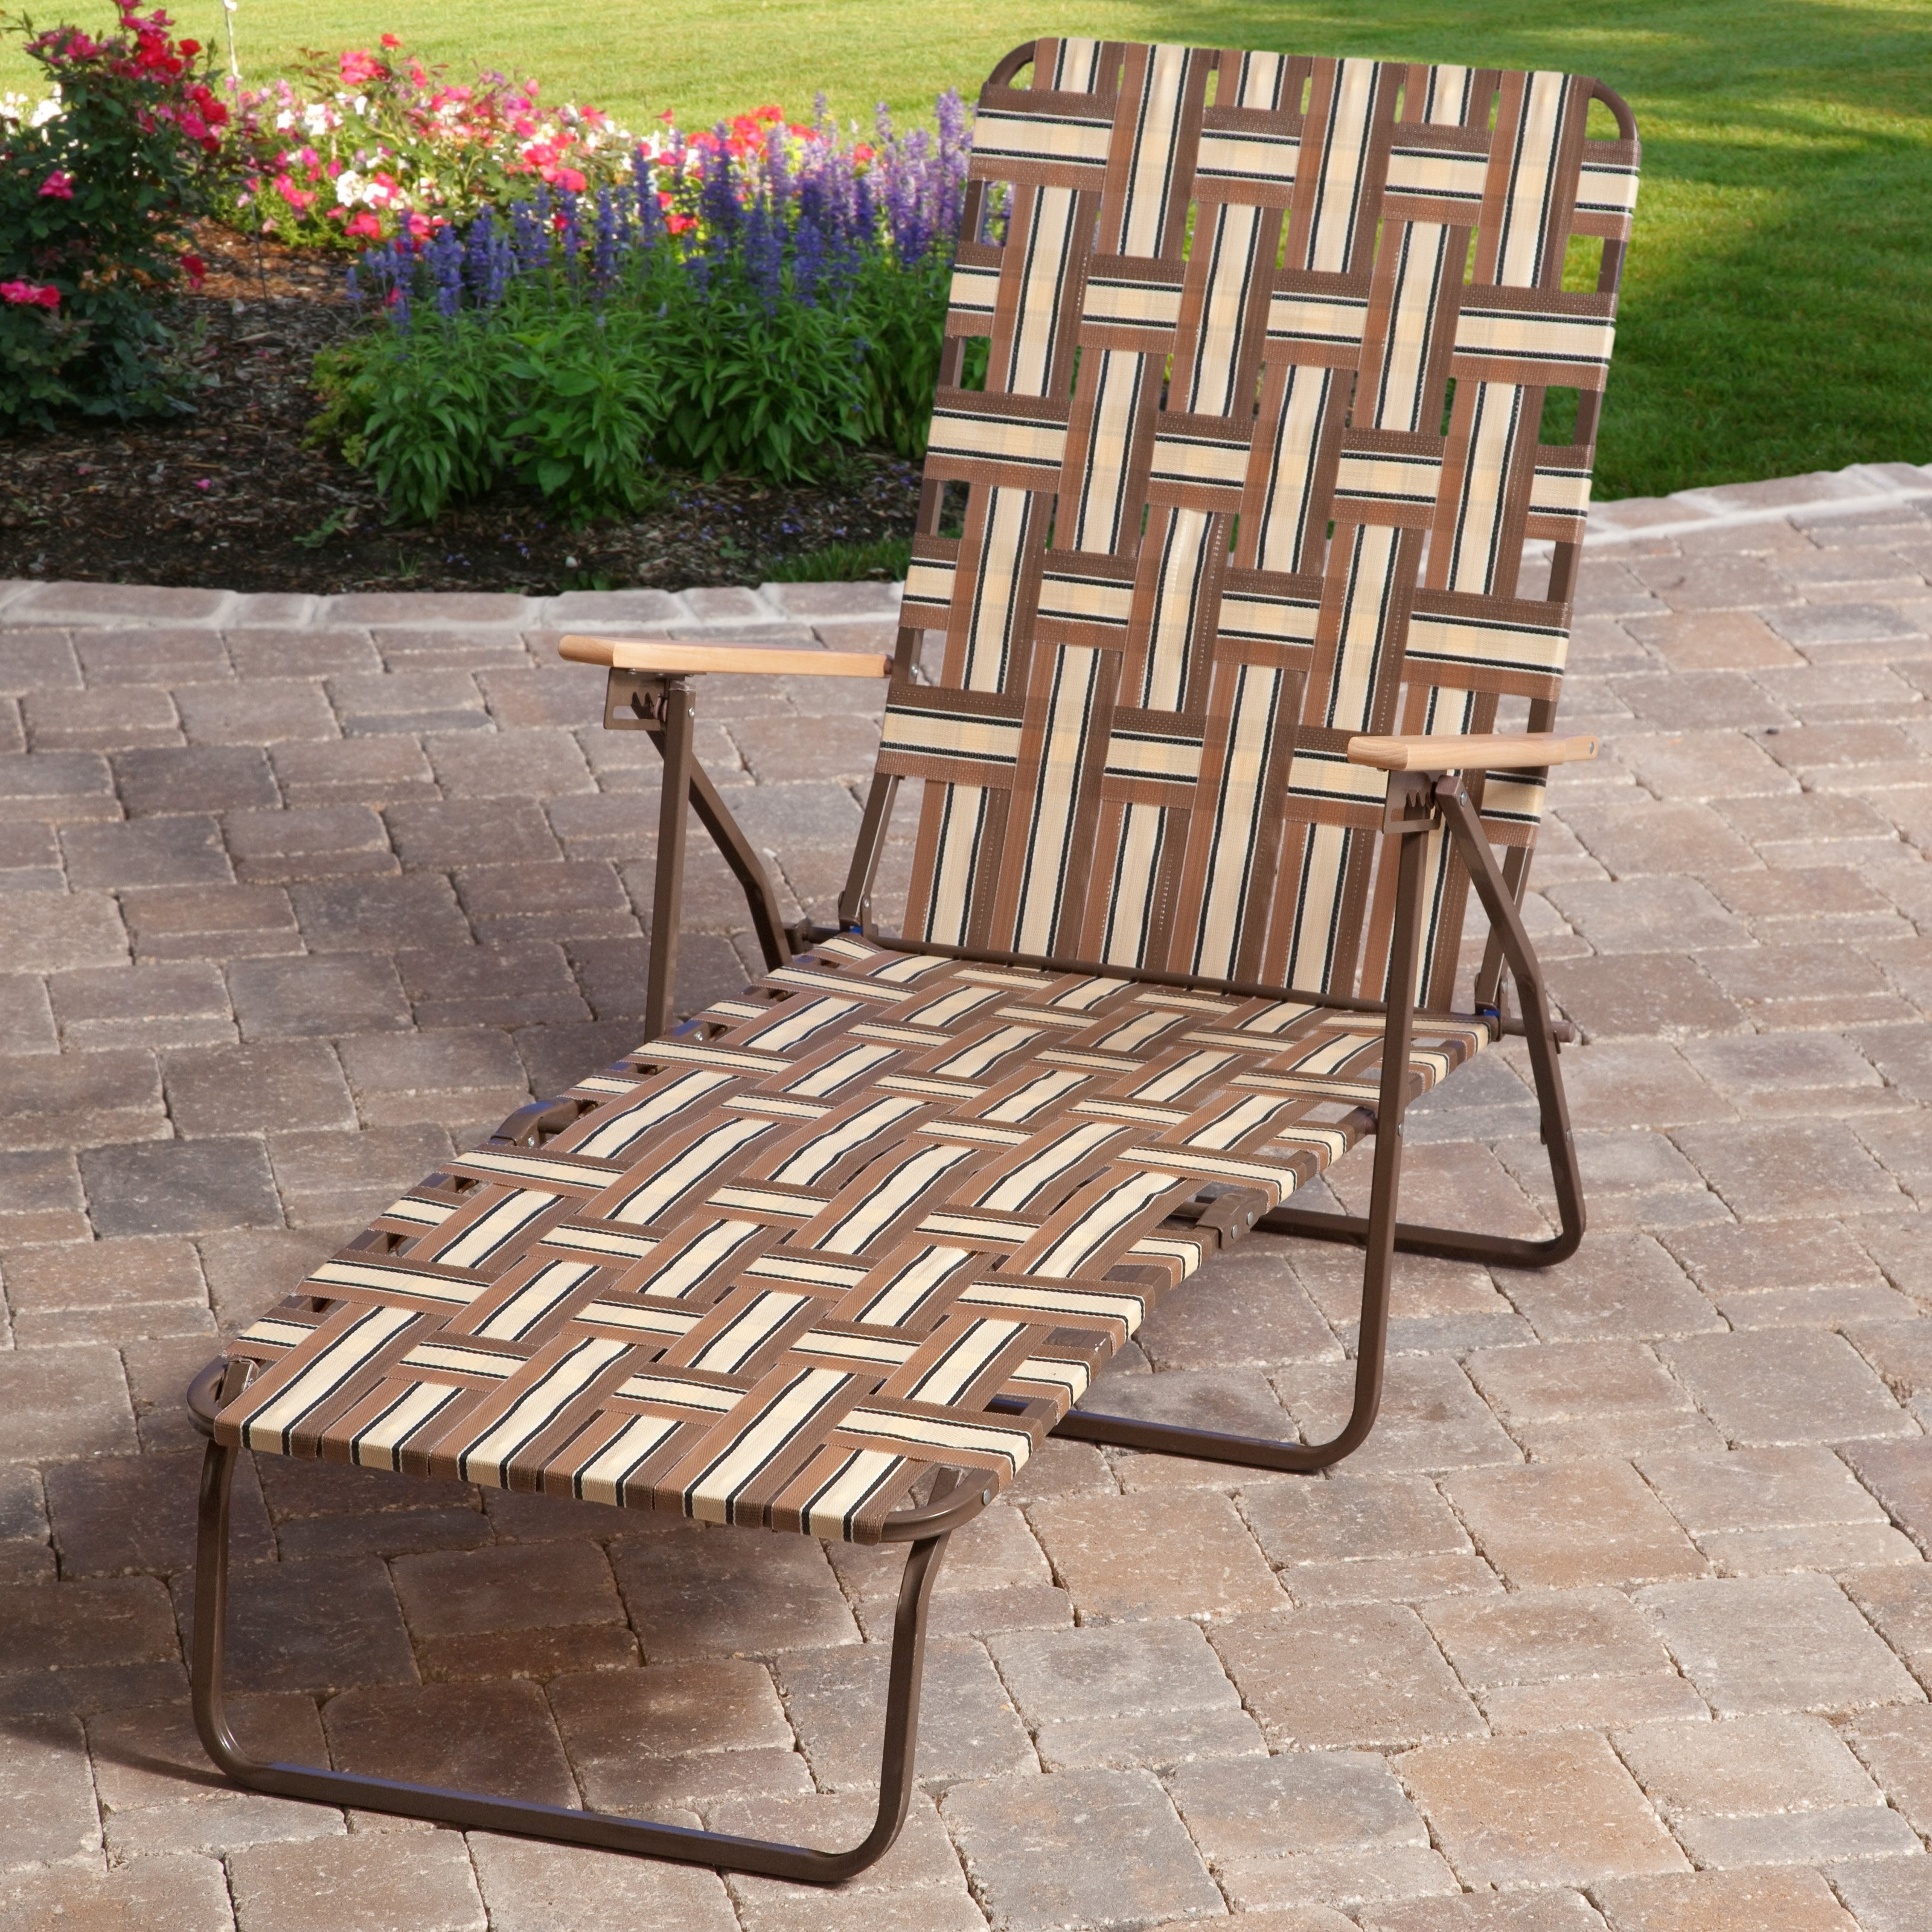 Foldable Chaise Lounge Outdoor Chairs Throughout Latest Rio Deluxe Folding Web Chaise Lounge – Walmart (View 8 of 15)